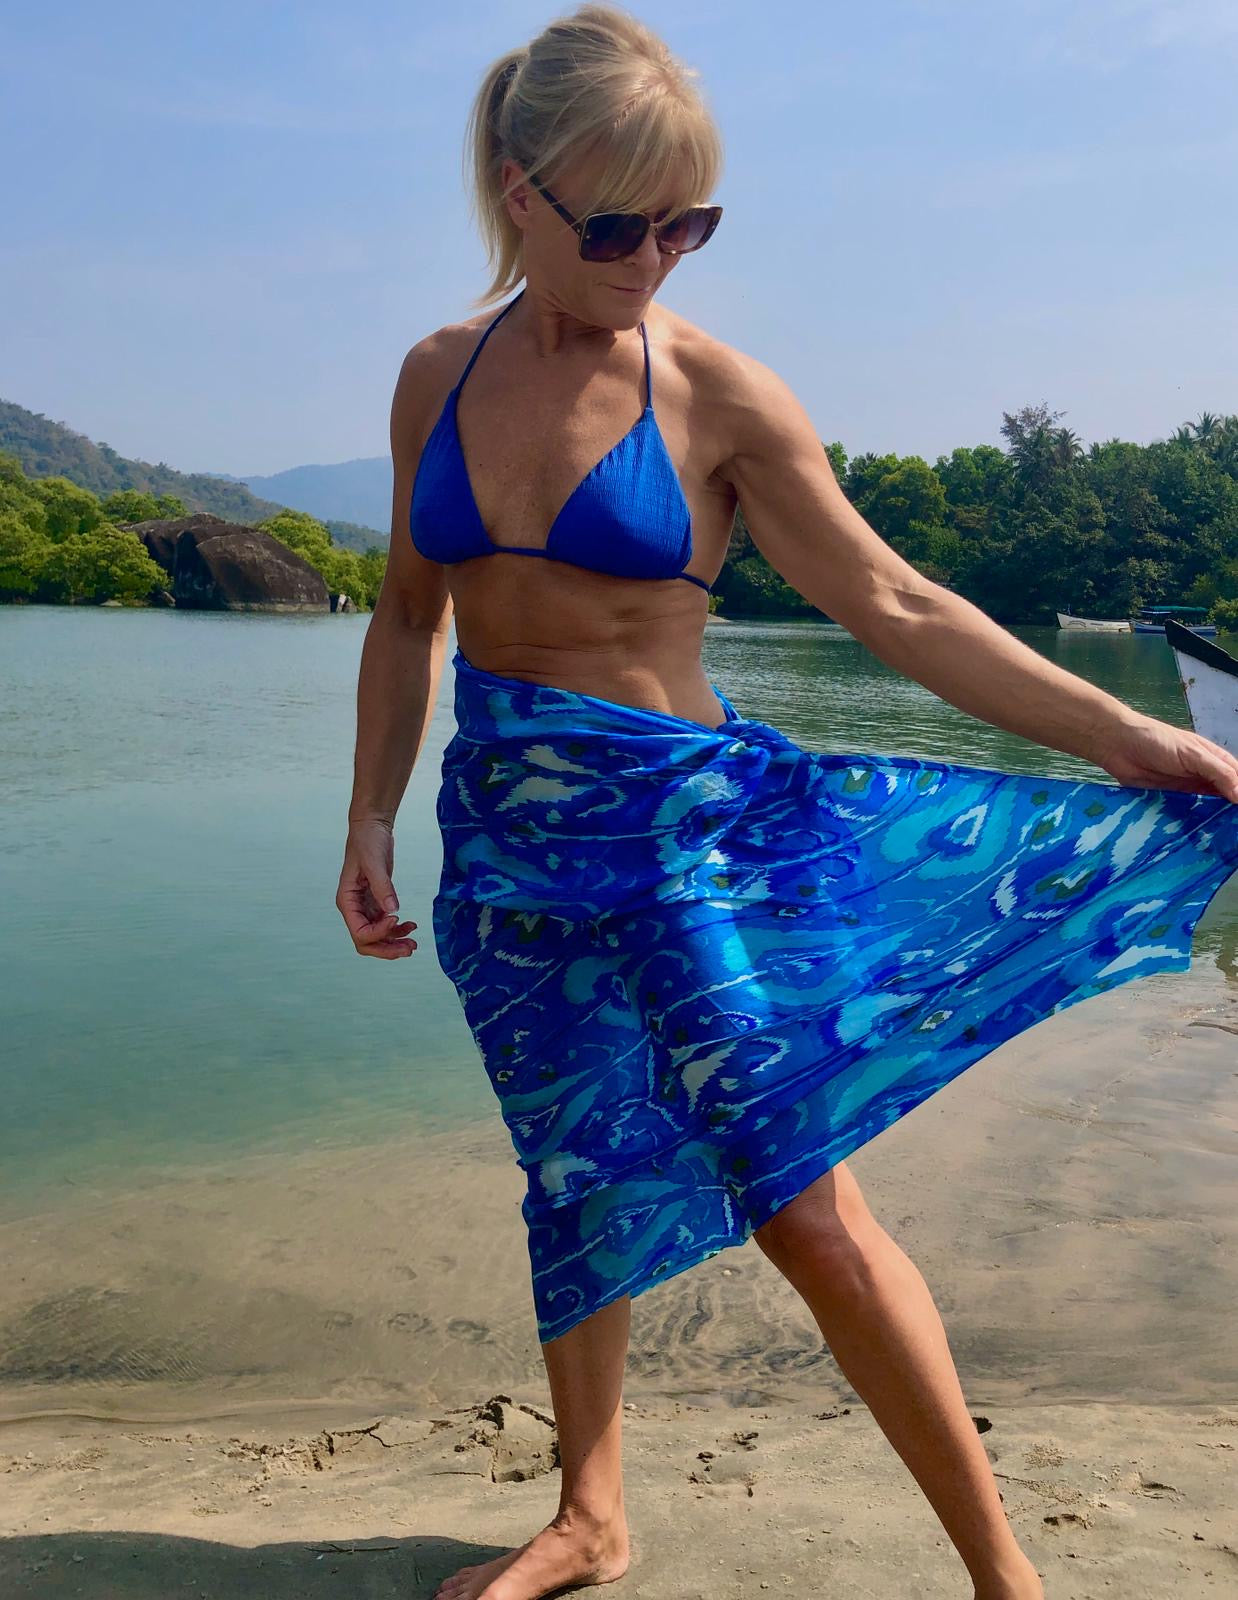 Ligurian blue large silk scarf worn as skirt